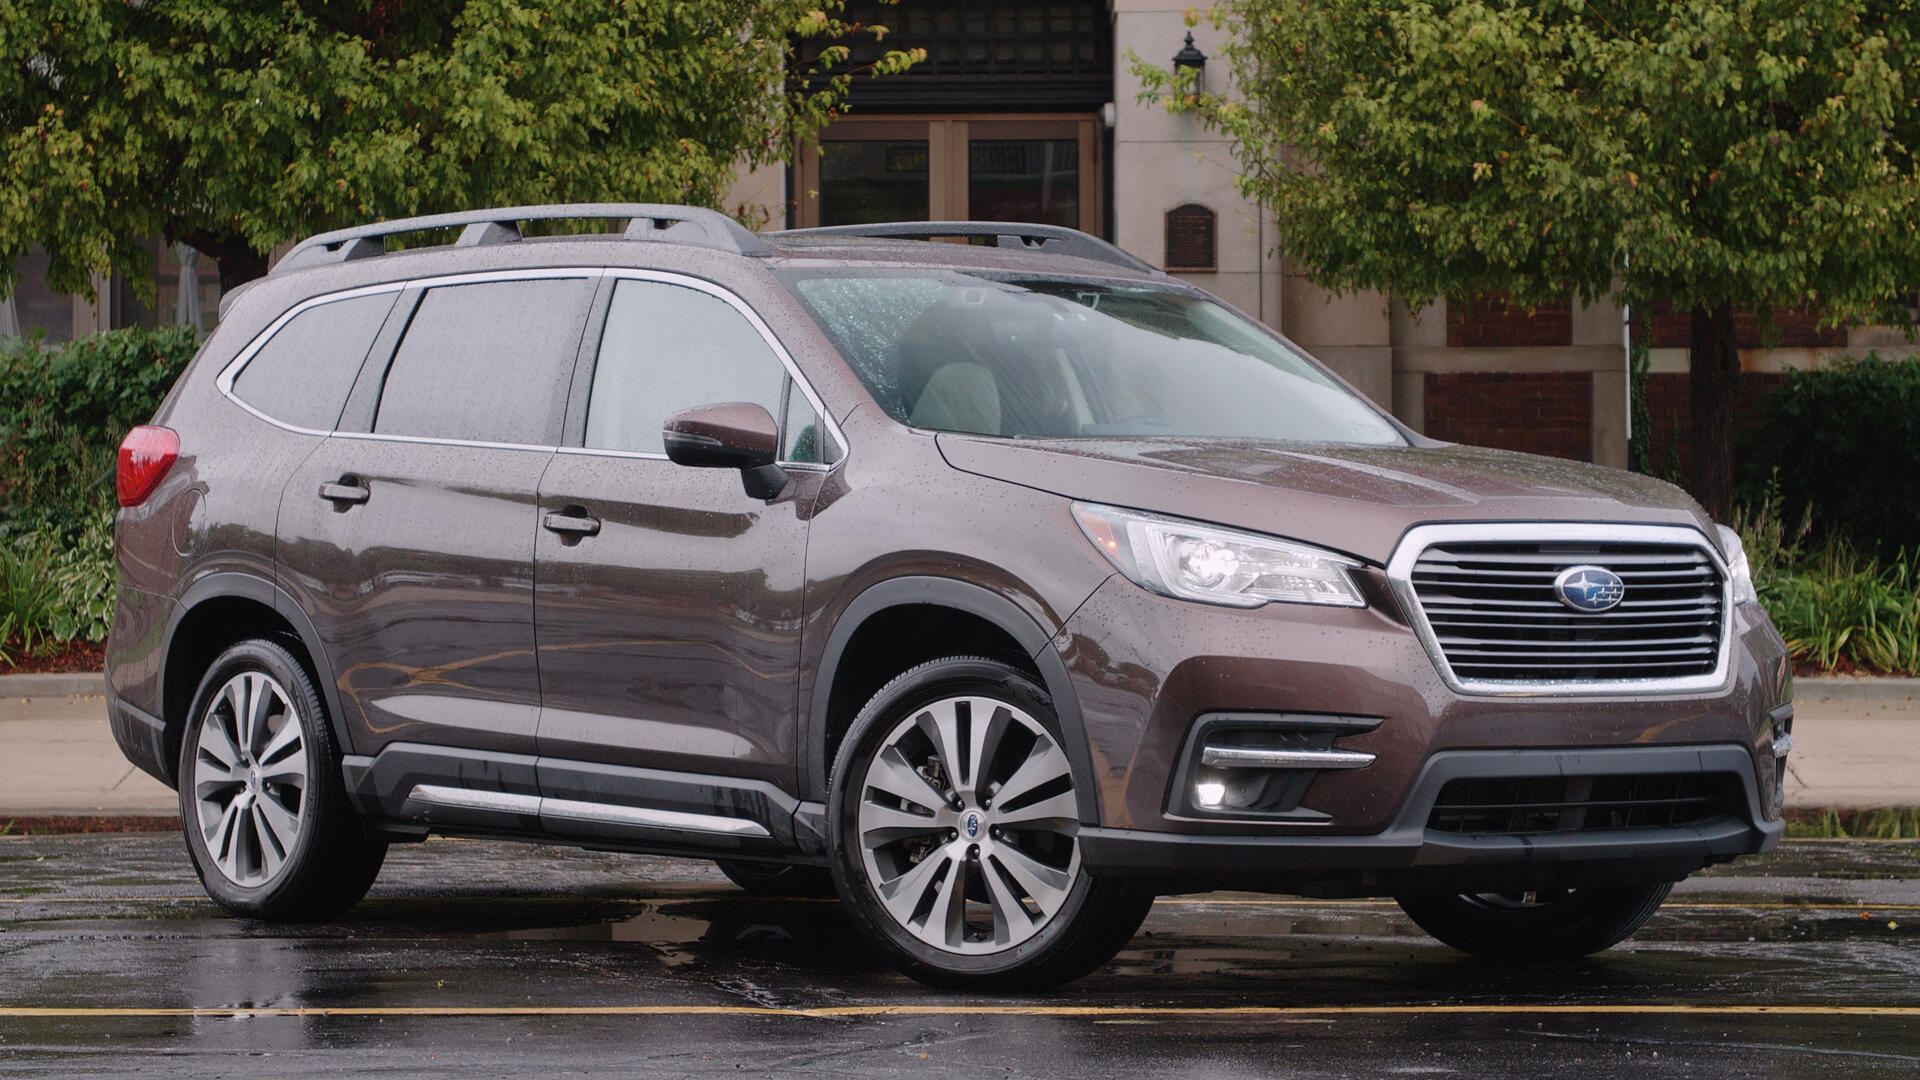 Video: Subaru Ascent long-termer: Final update